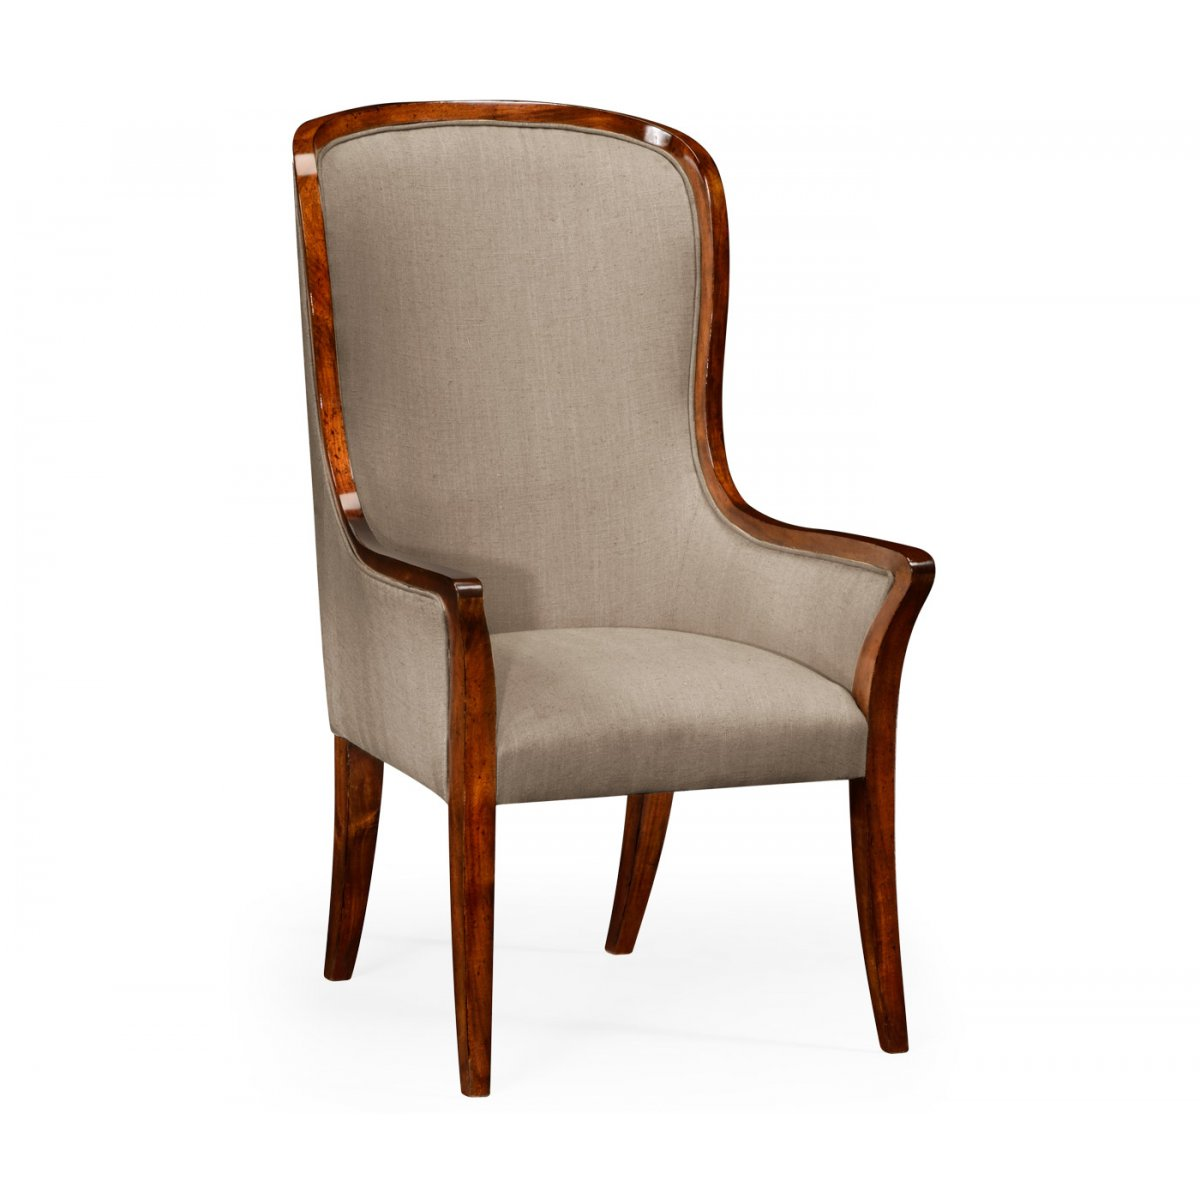 Upholstered High Back Dining Chair: High Back Upholstered Dining Armchair